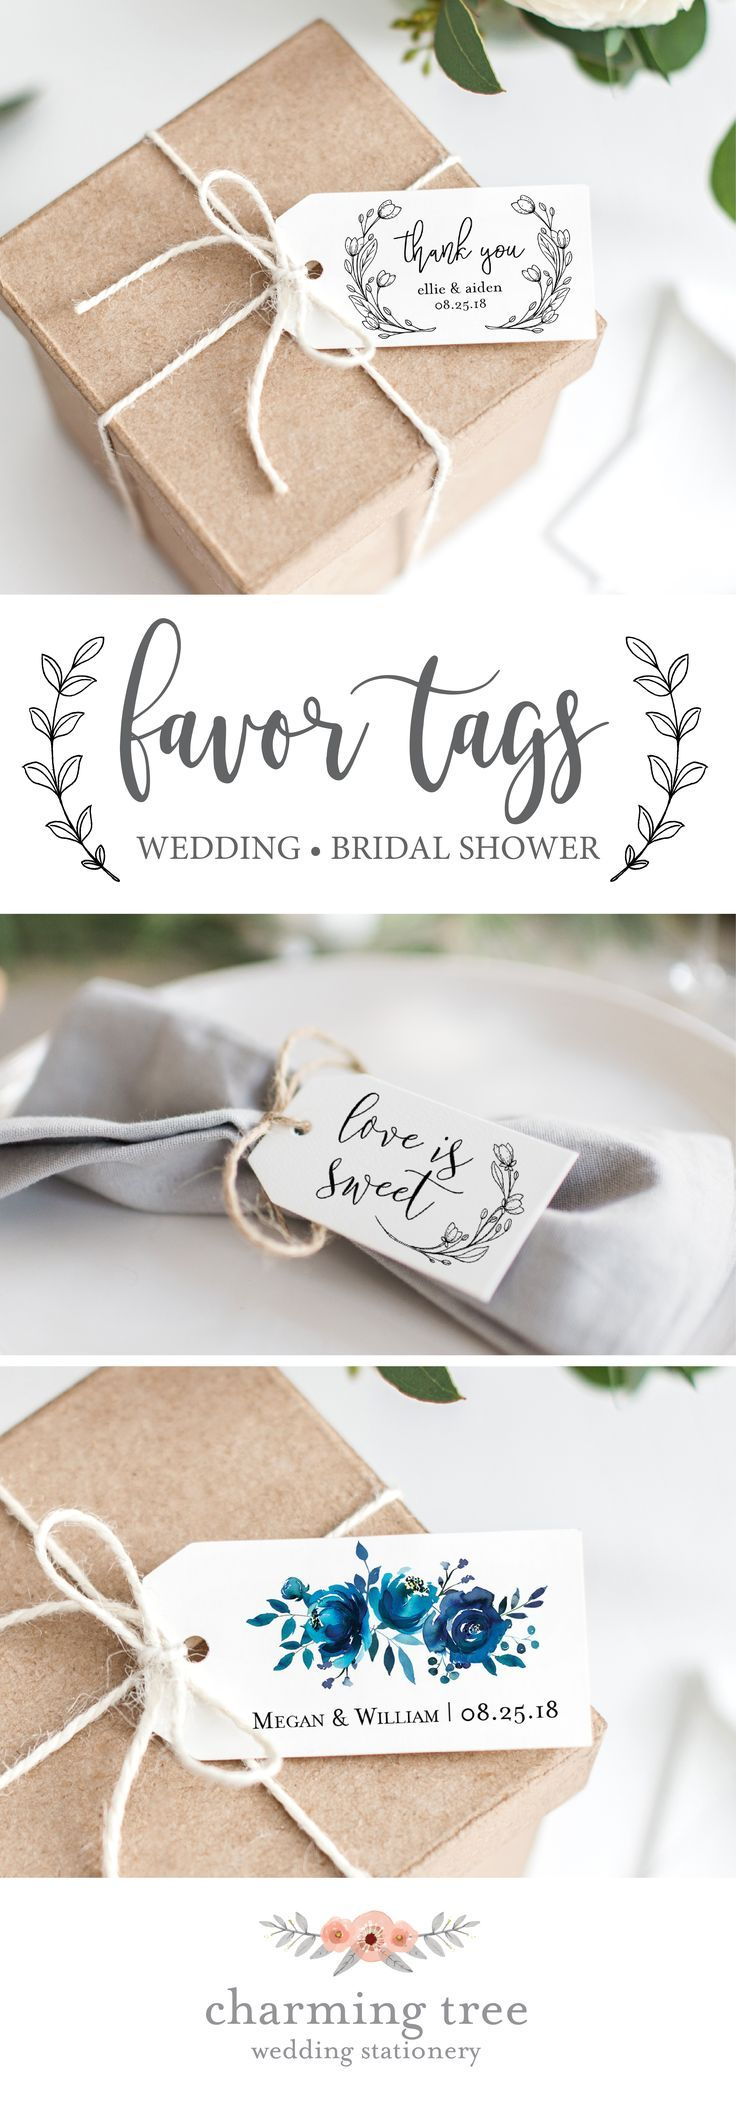 59 best Wedding Welcome Bags images on Pinterest | Beach weddings ...